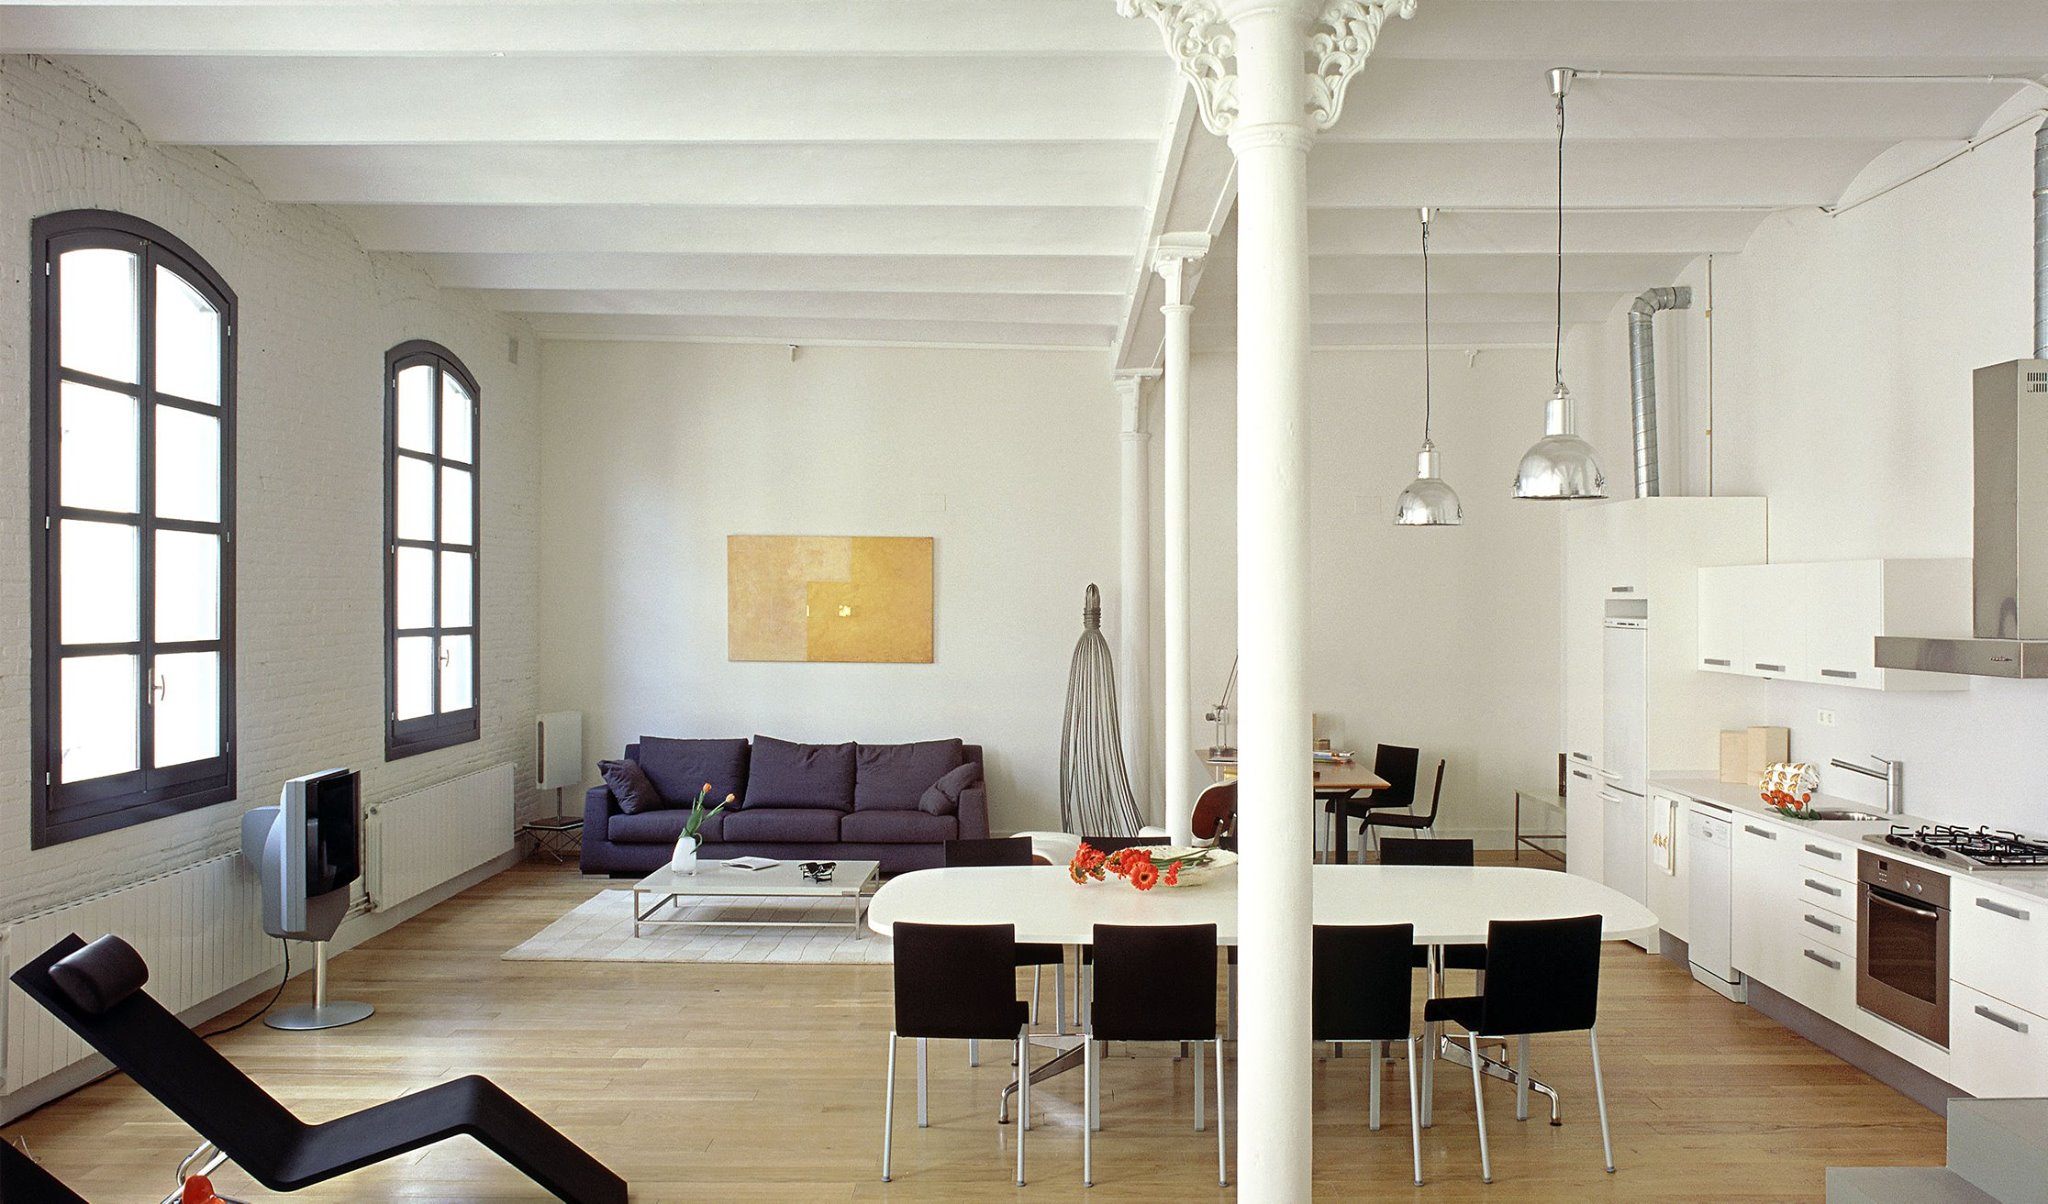 Loft Passatge Sert from Sara Folch Interior Design focusing on the space, light and order motto